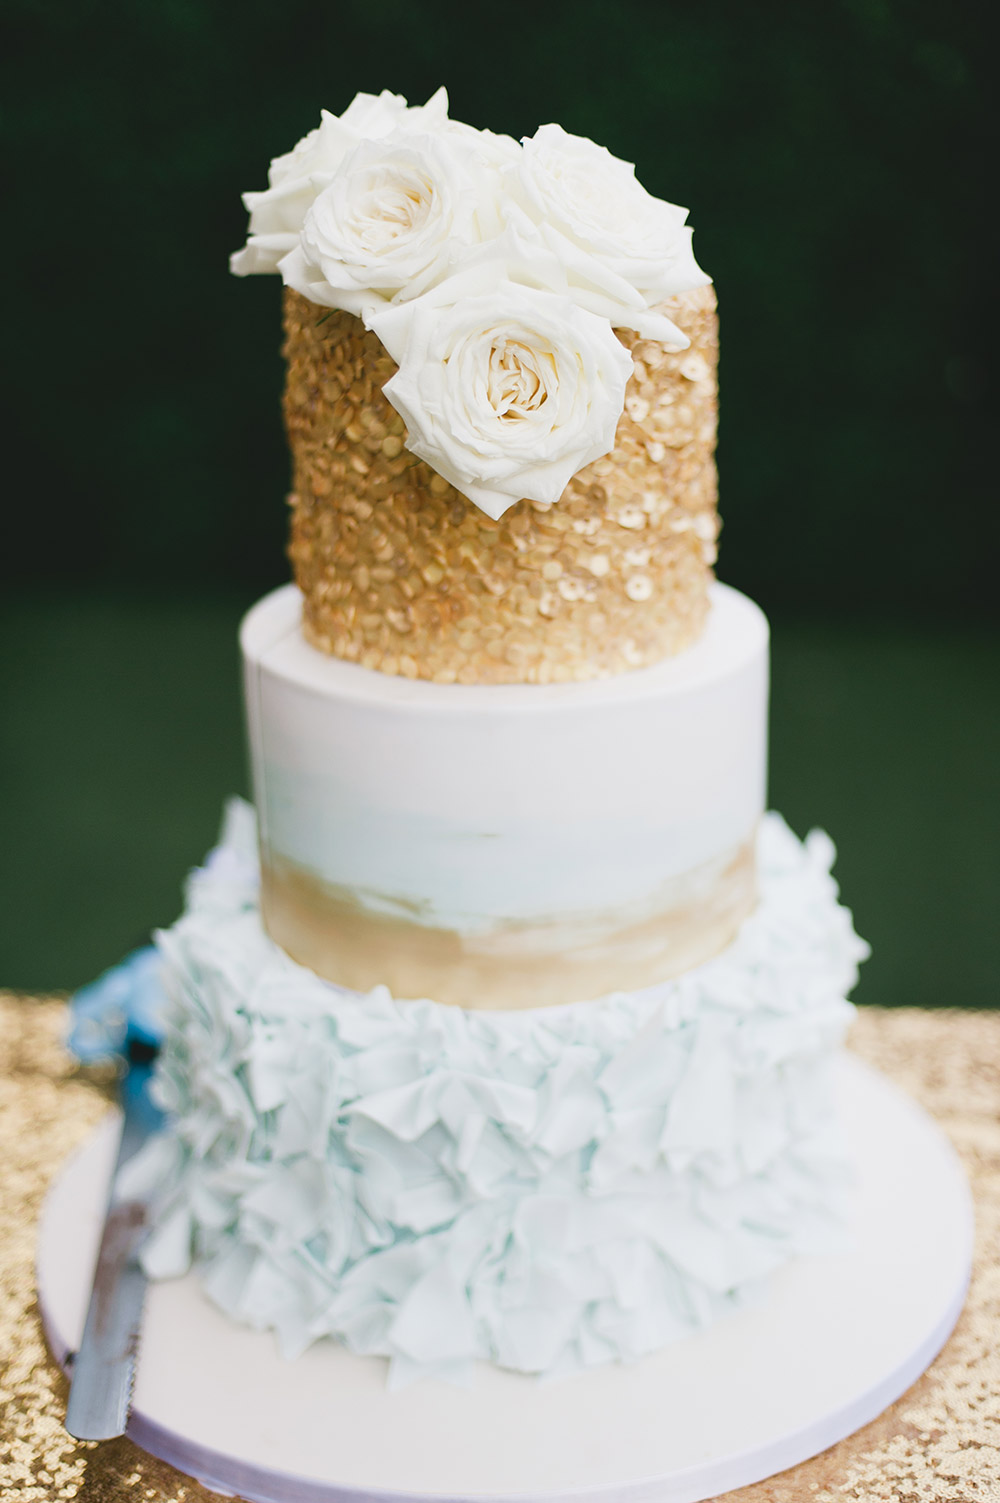 Cake by Miss Shortcakes. Photo by Inlight Photos. www.theweddingnotebook.com